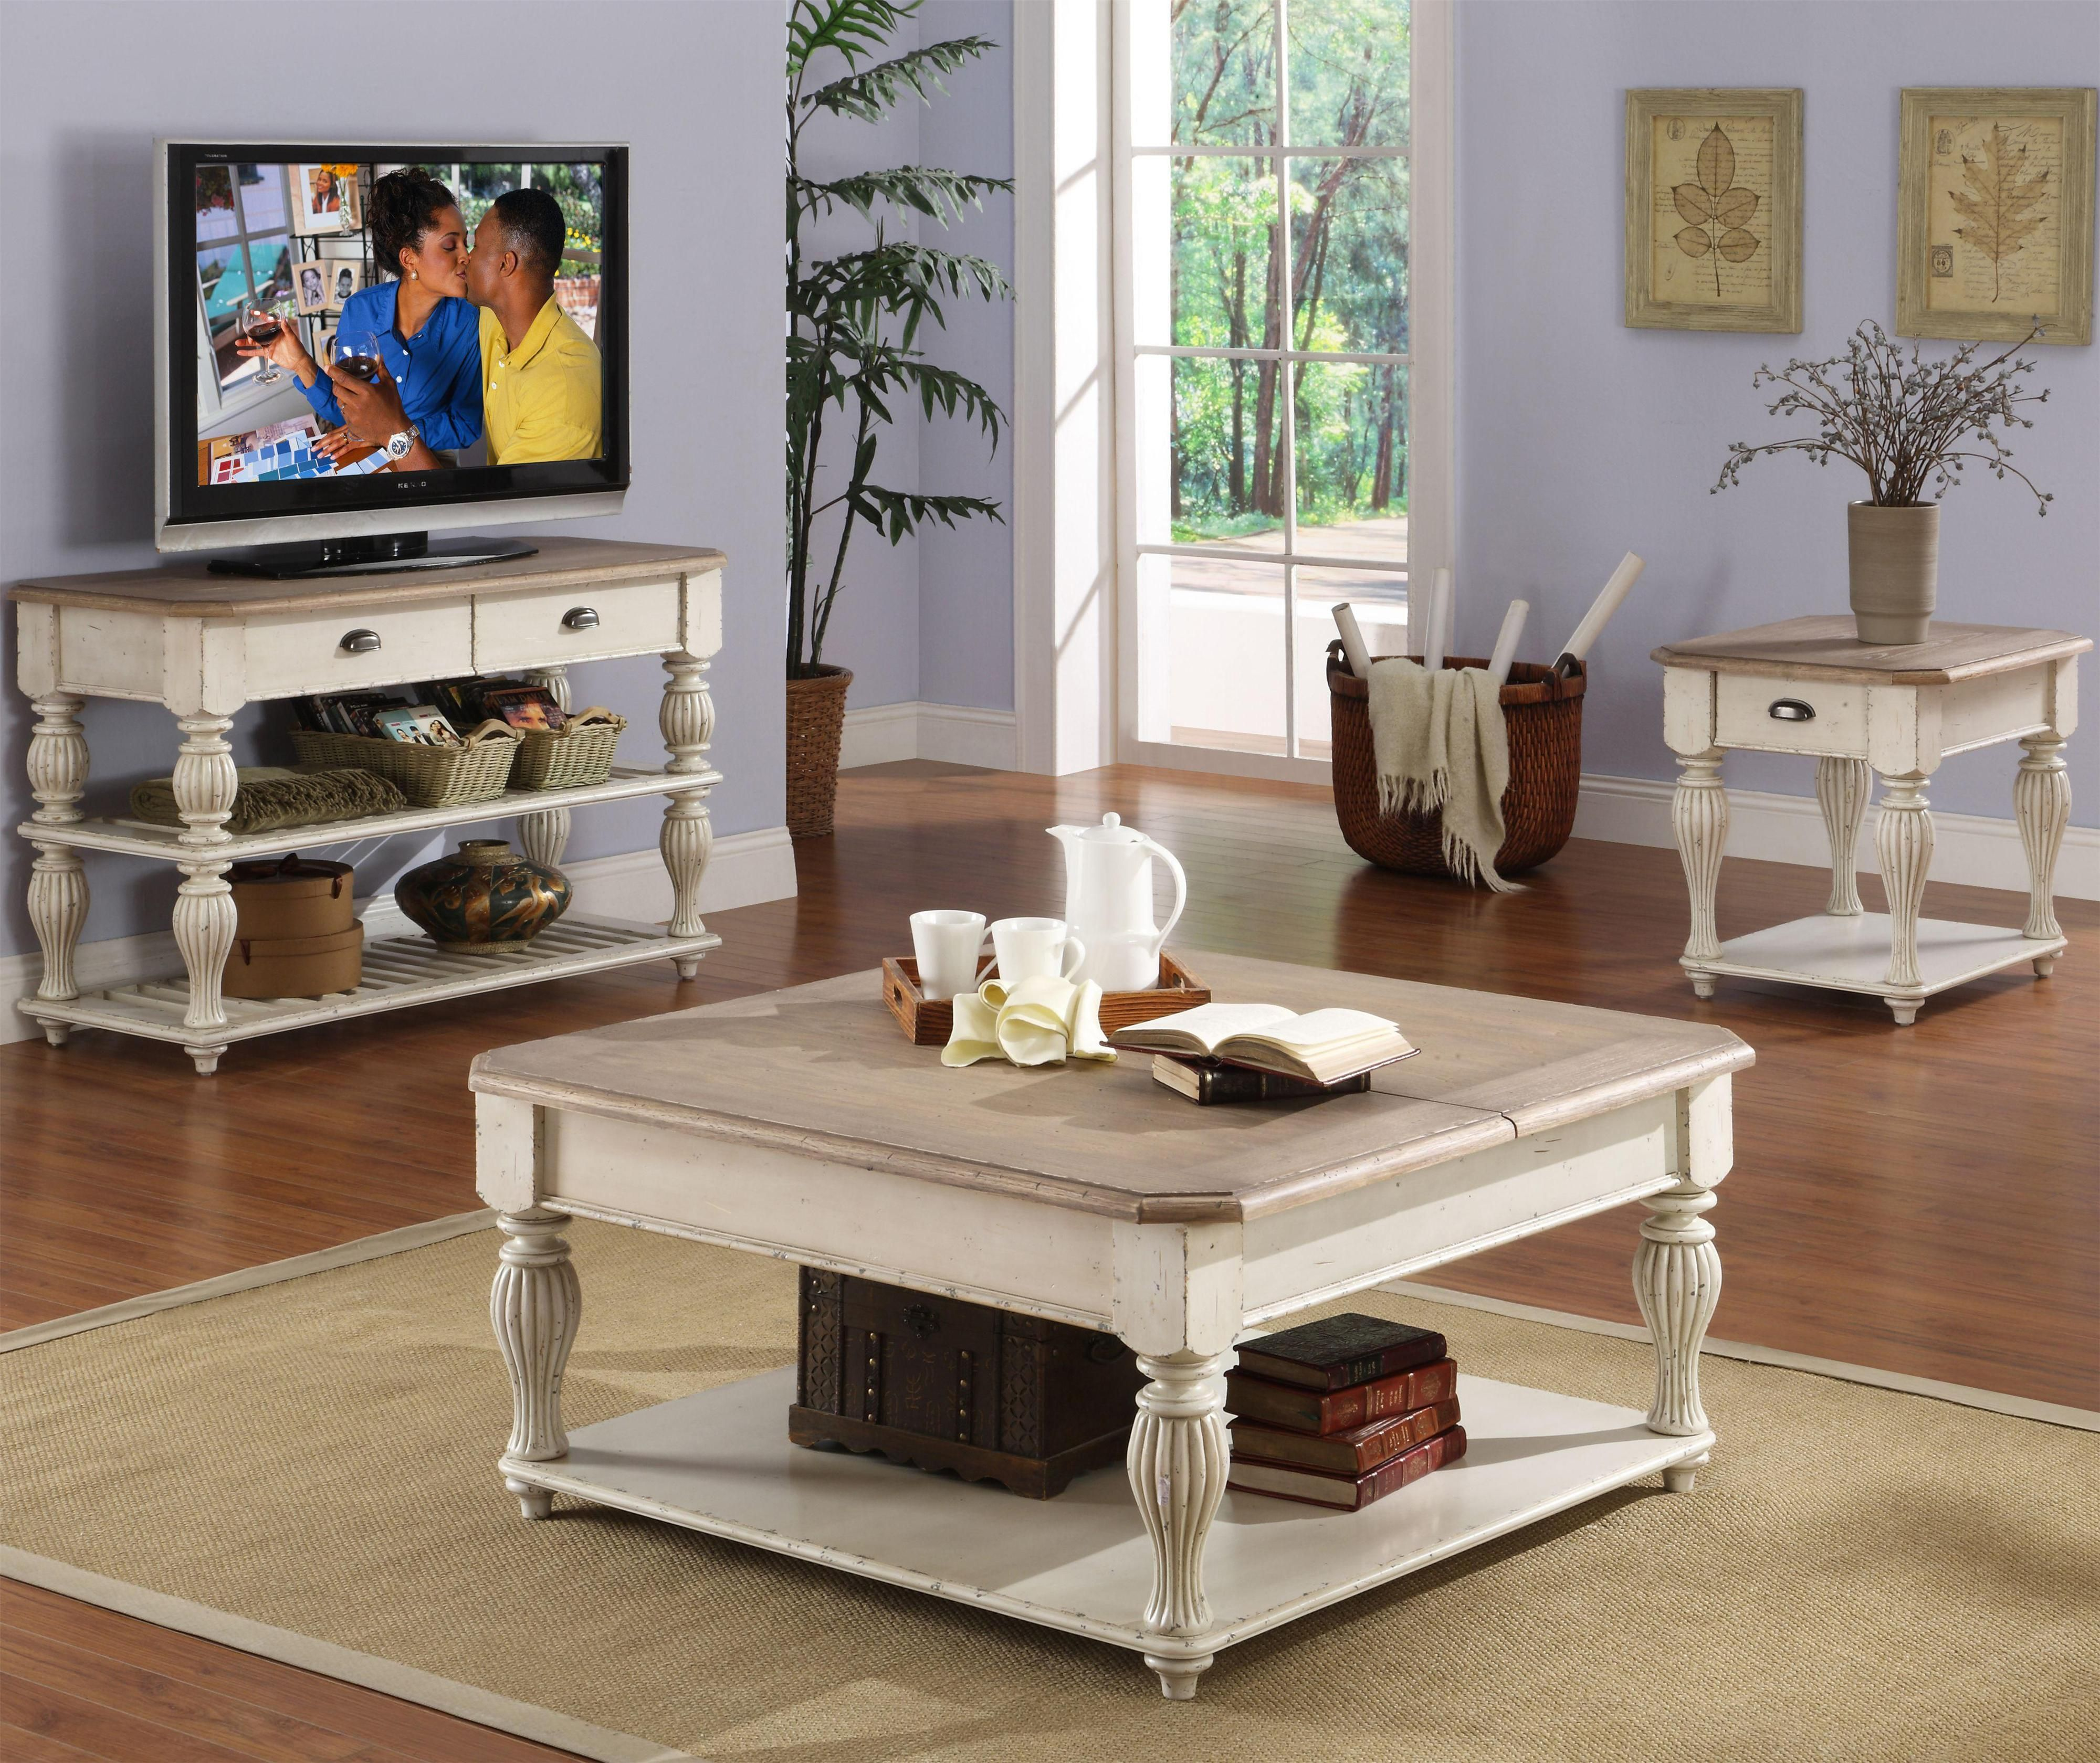 Square Lift Top Coffee Table with Fixed Bottom Shelf